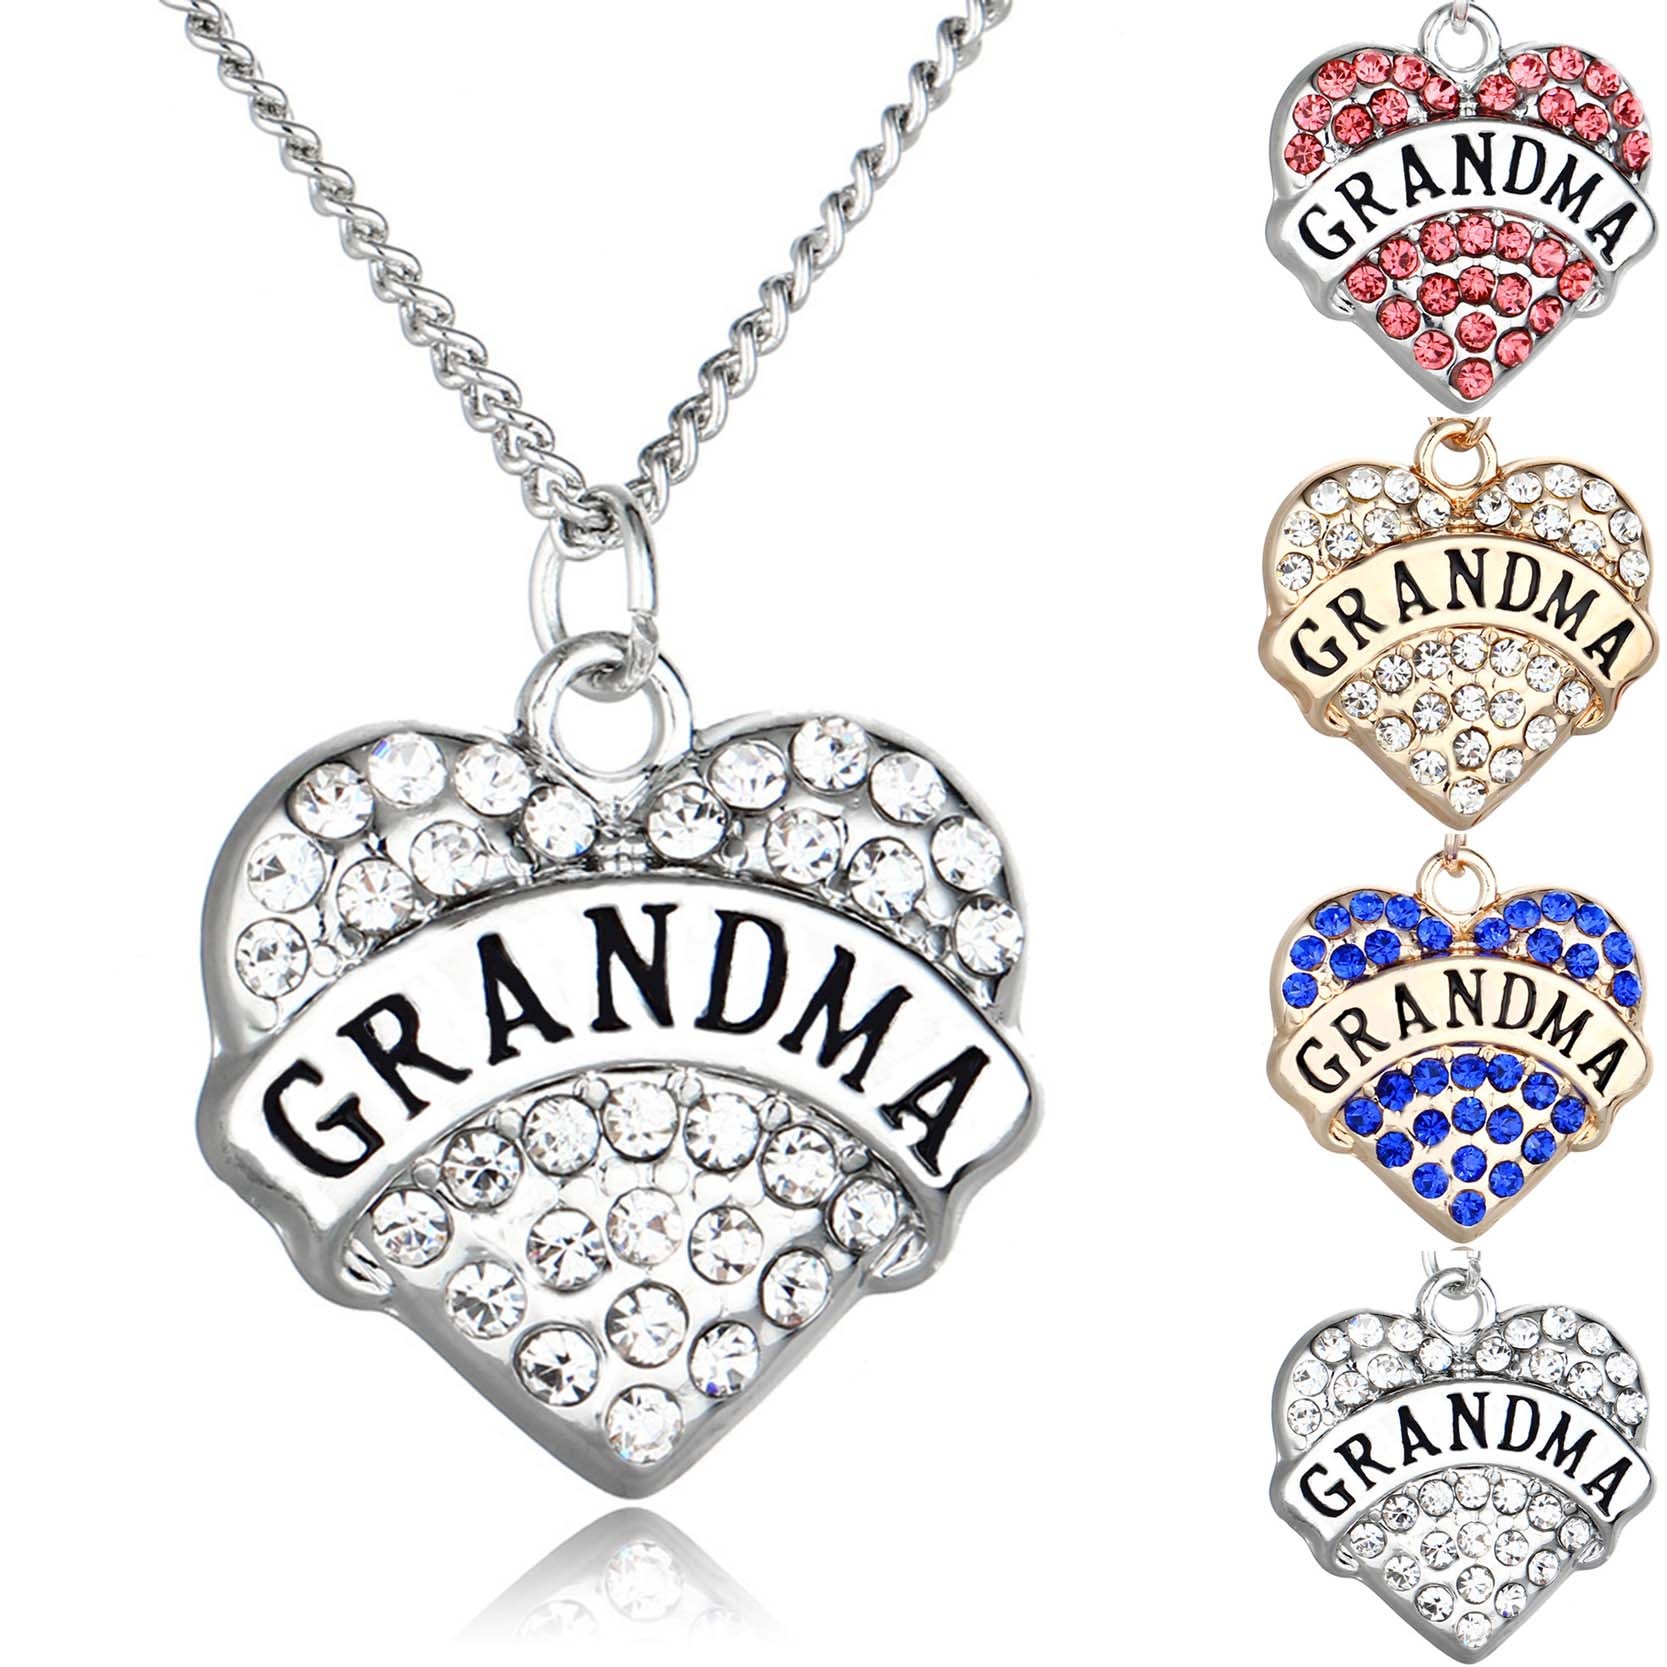 Family member jewelry silvergold color with rhinestone heart shaped family member jewelry silvergold color with rhinestone heart shaped grandma pendant choker long necklace for christmas gift in pendant necklaces from aloadofball Image collections